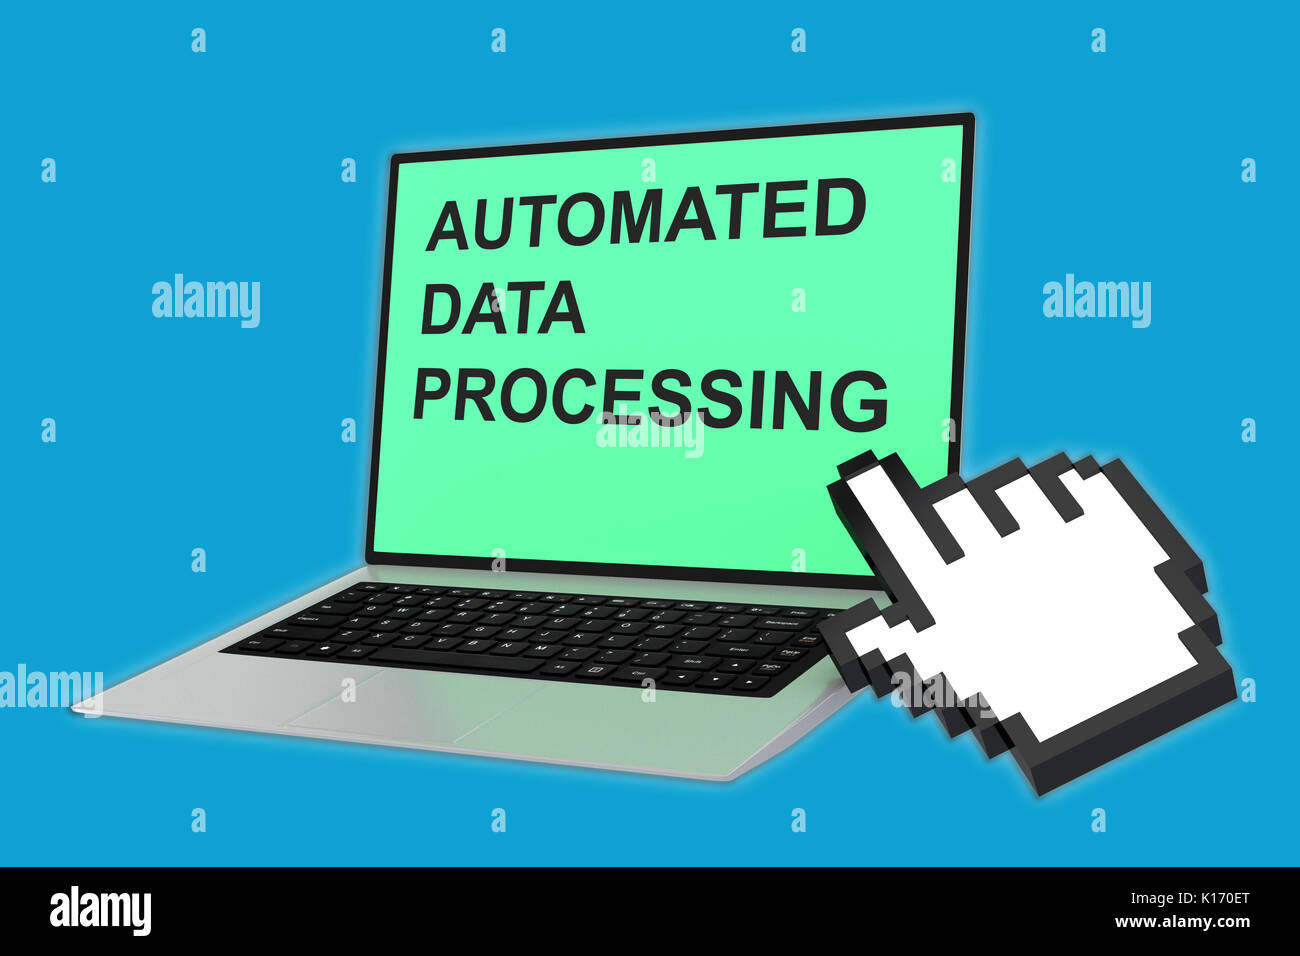 3D illustration of AUTOMATED DATA PROCESSING script with